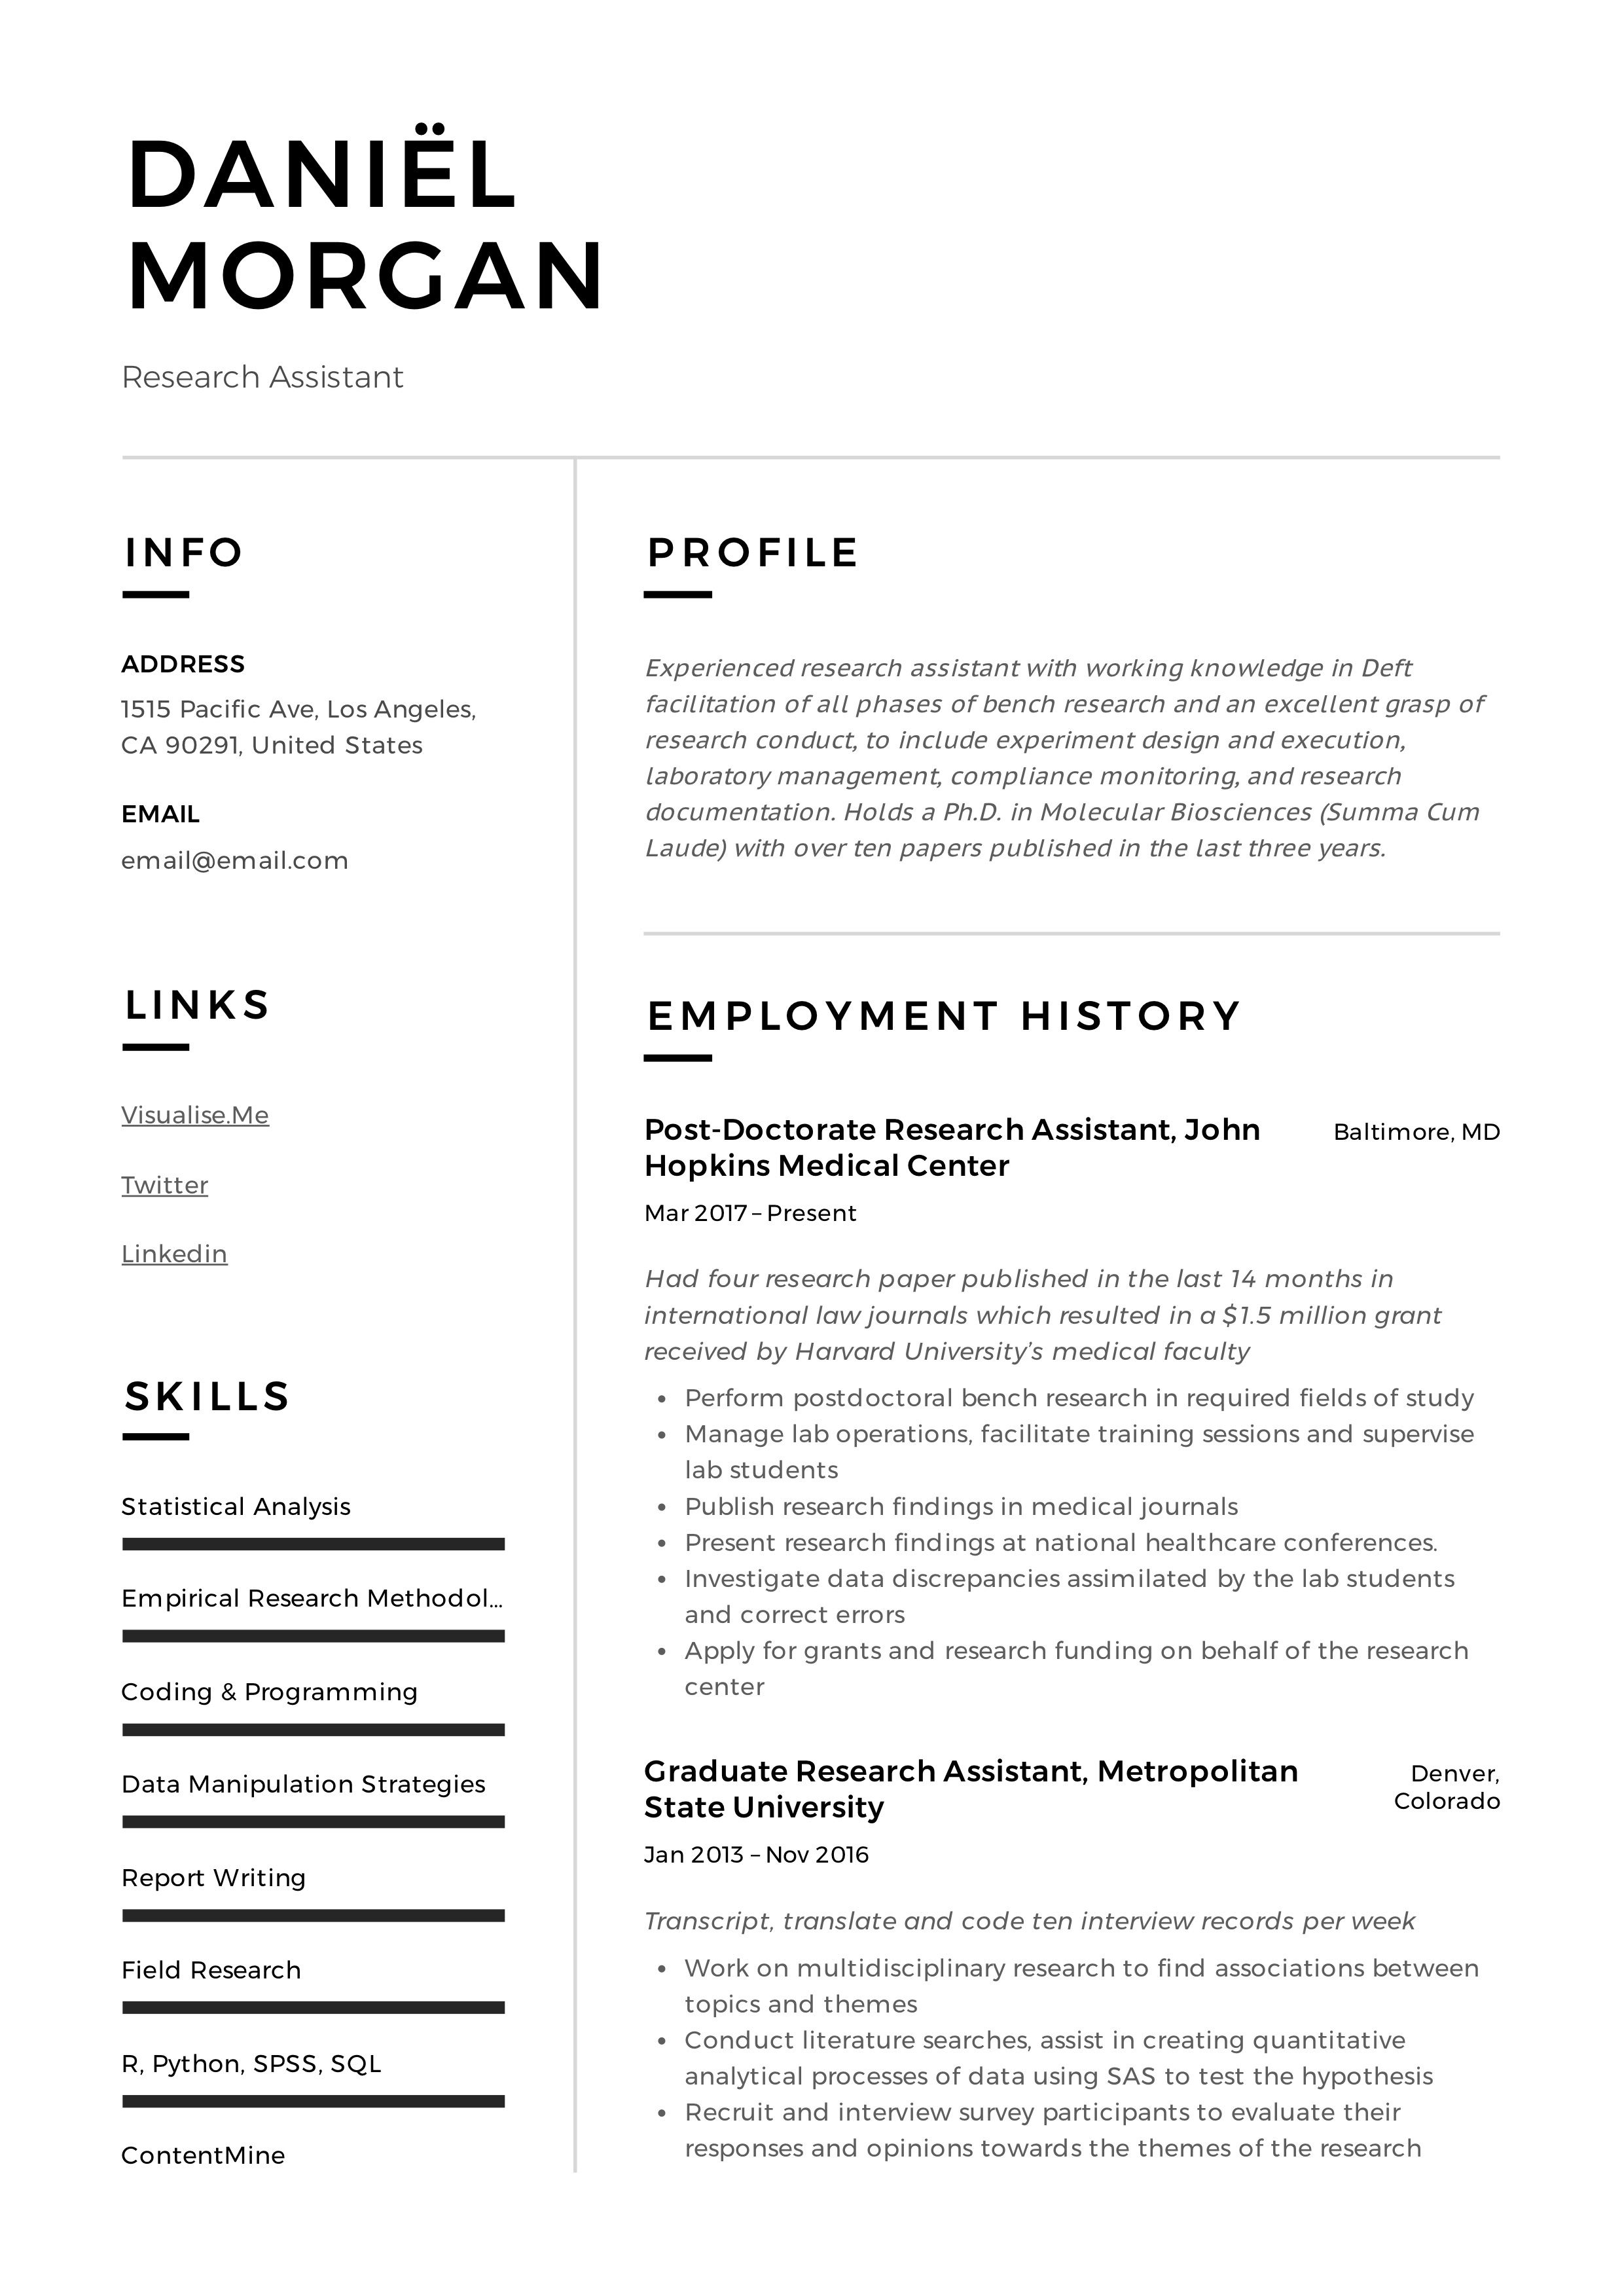 Research Assistant Resume Sample Research Assistant Guided Writing Resume Guide